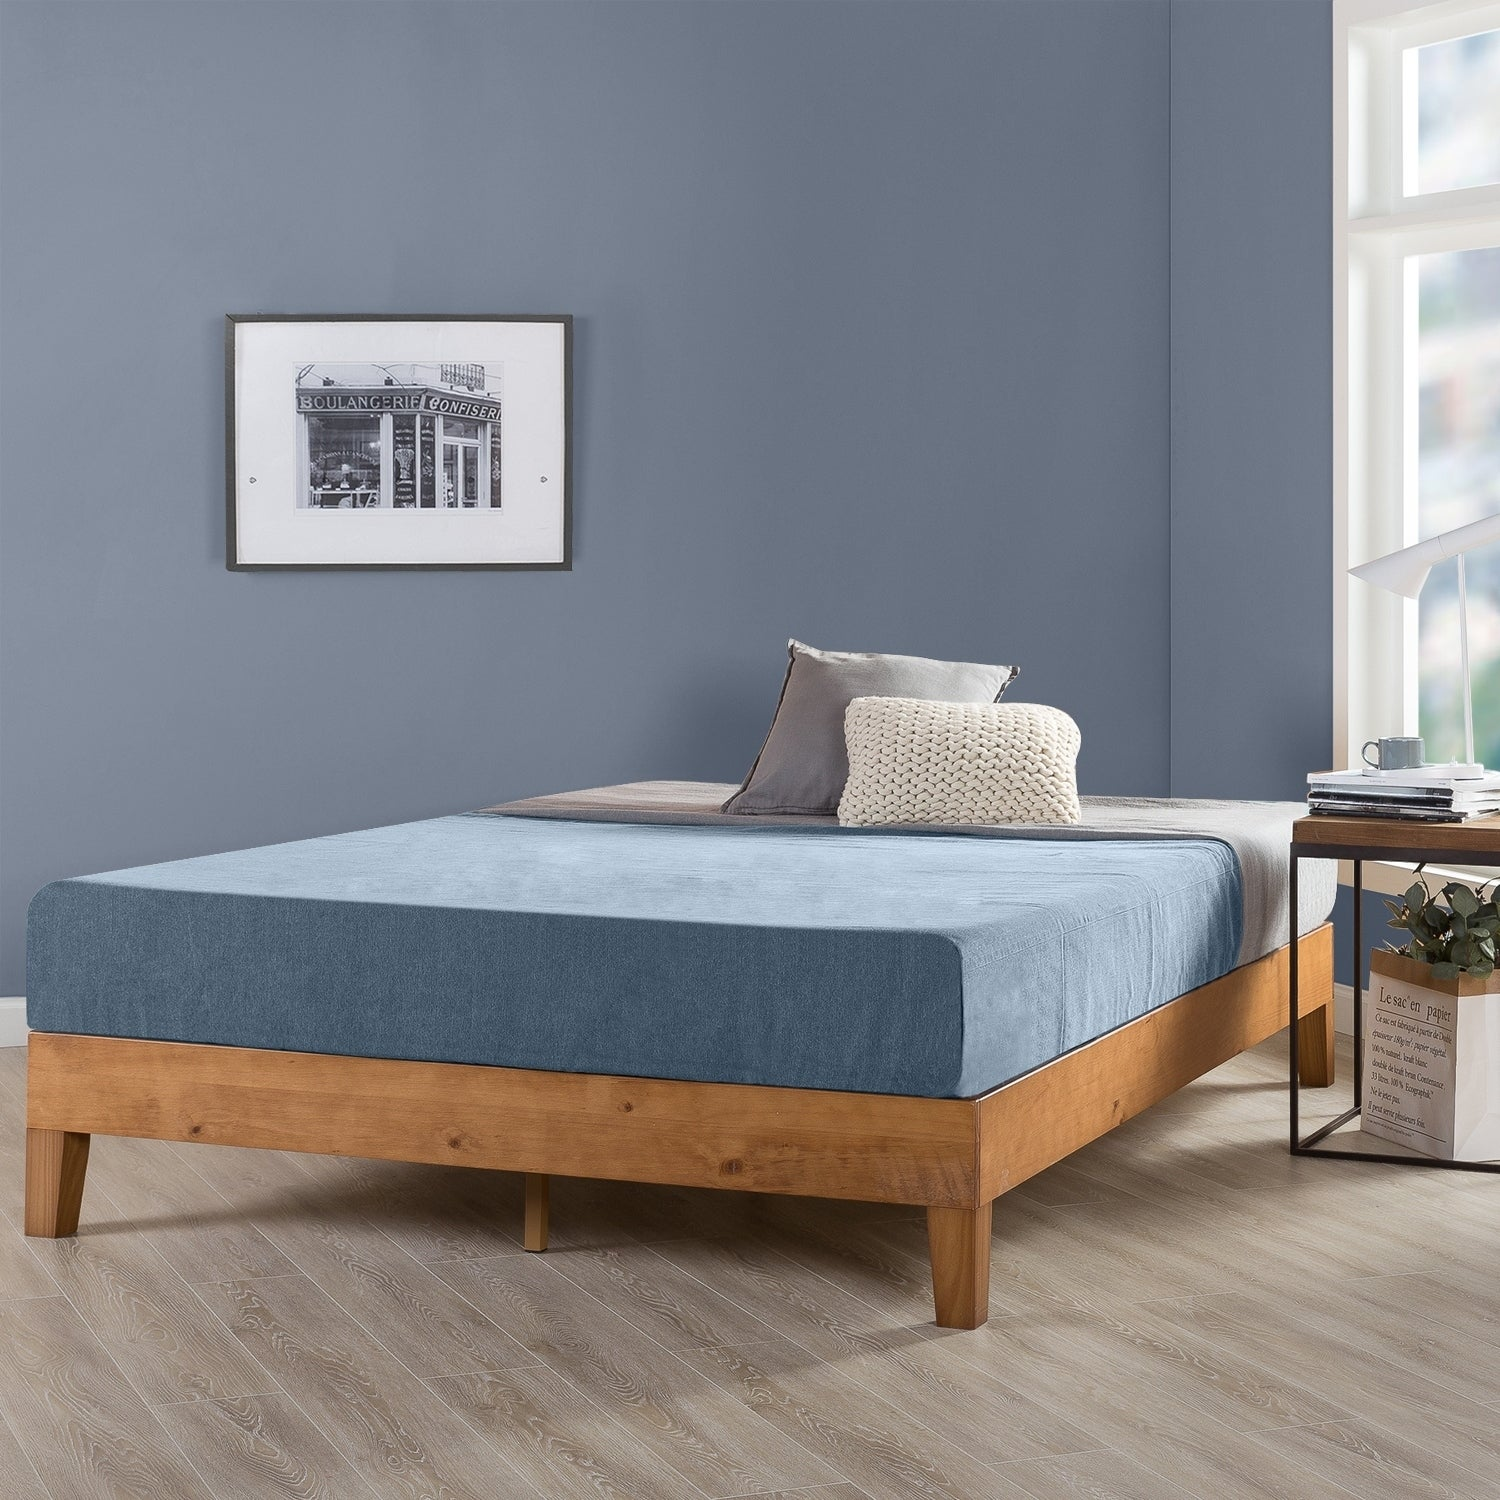 Queen Size 12 Inch Grand Solid Wood Platform Bed Frame, Natural - Crown Comfort (Wood - Casual/Traditional/Modern & Contemporary - Queen)